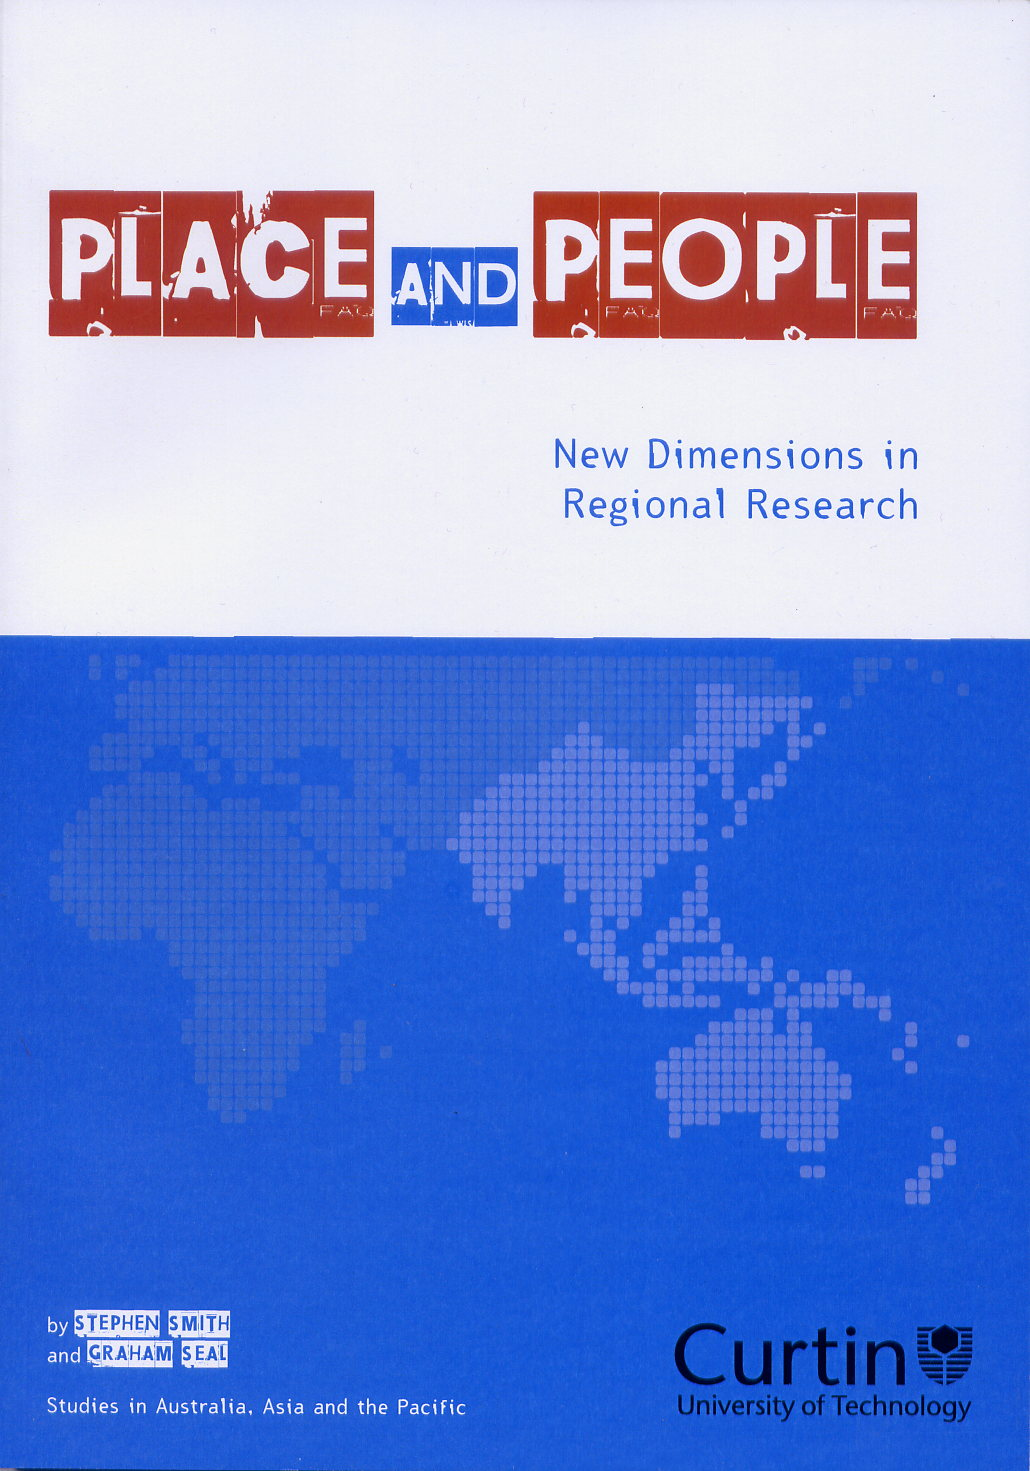 Place and People by Stephen Smith and Graham Seal